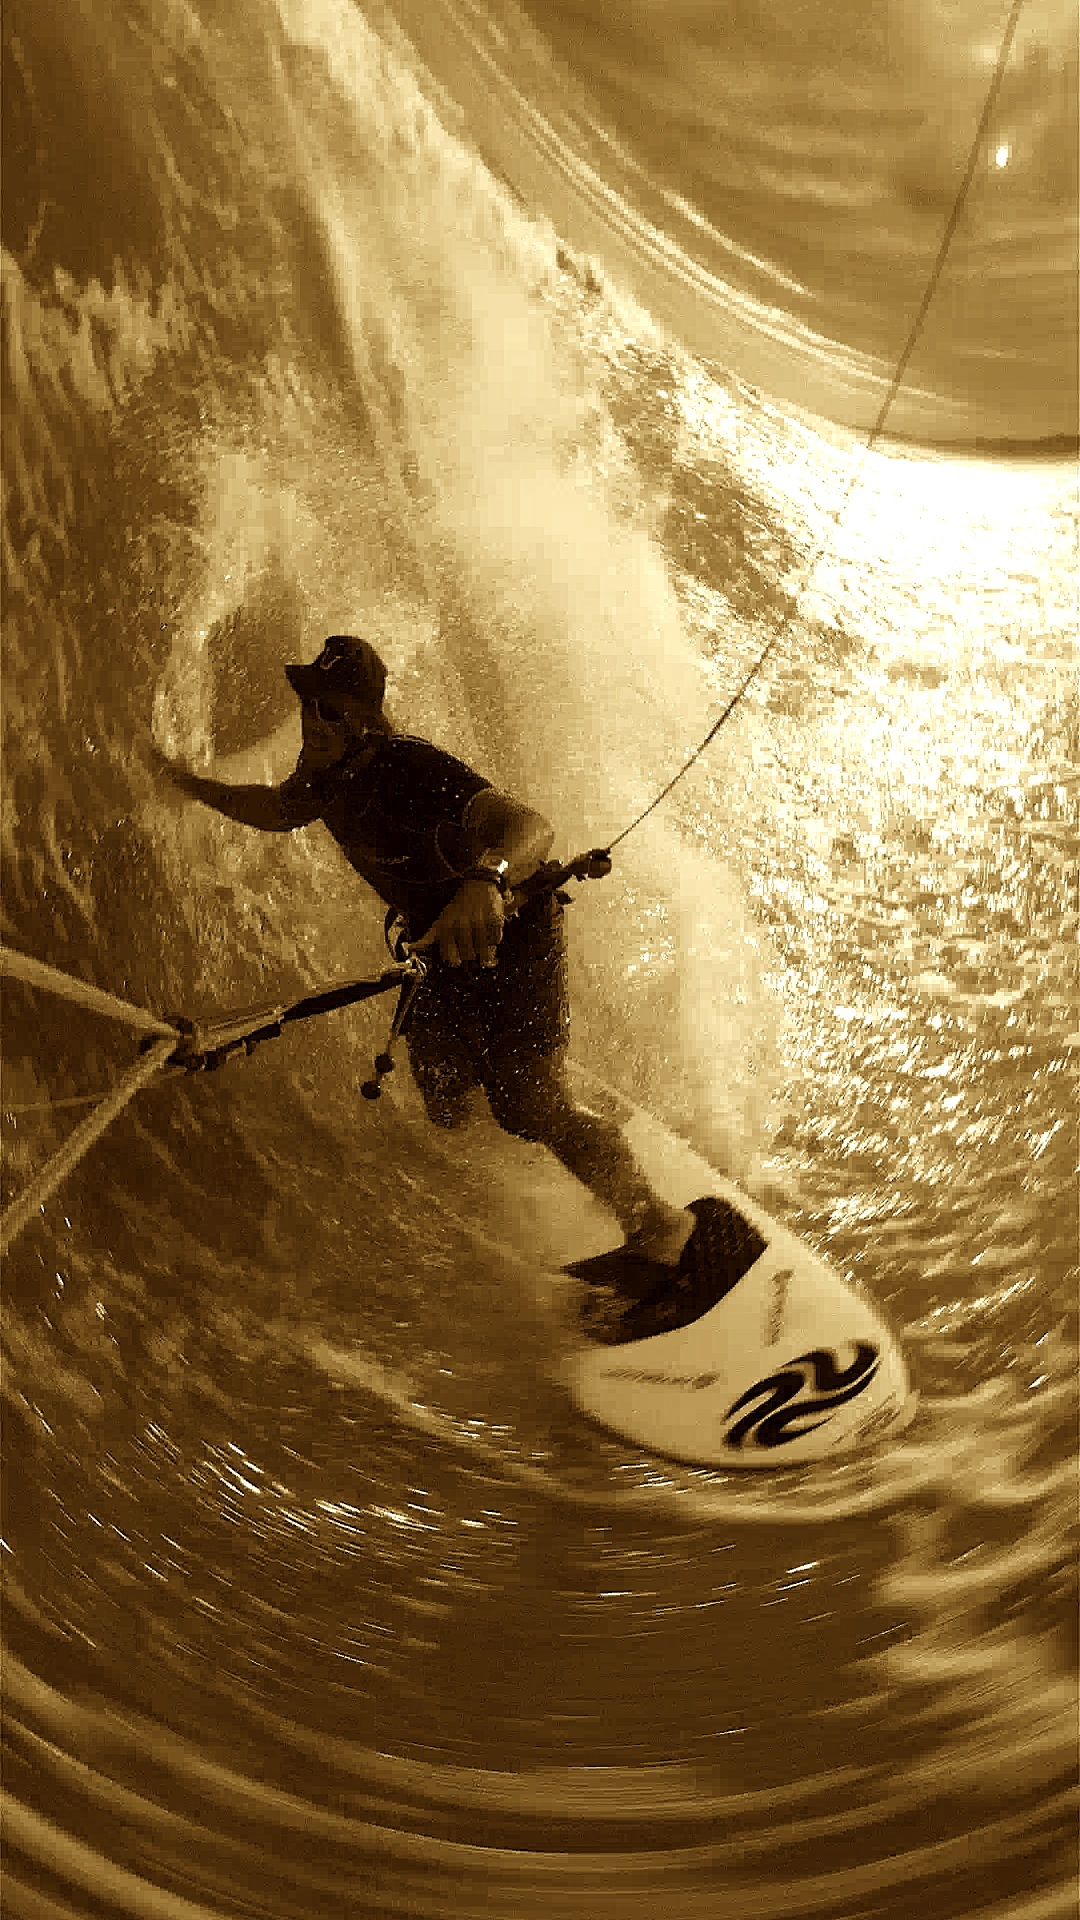 wavetube.jpeg